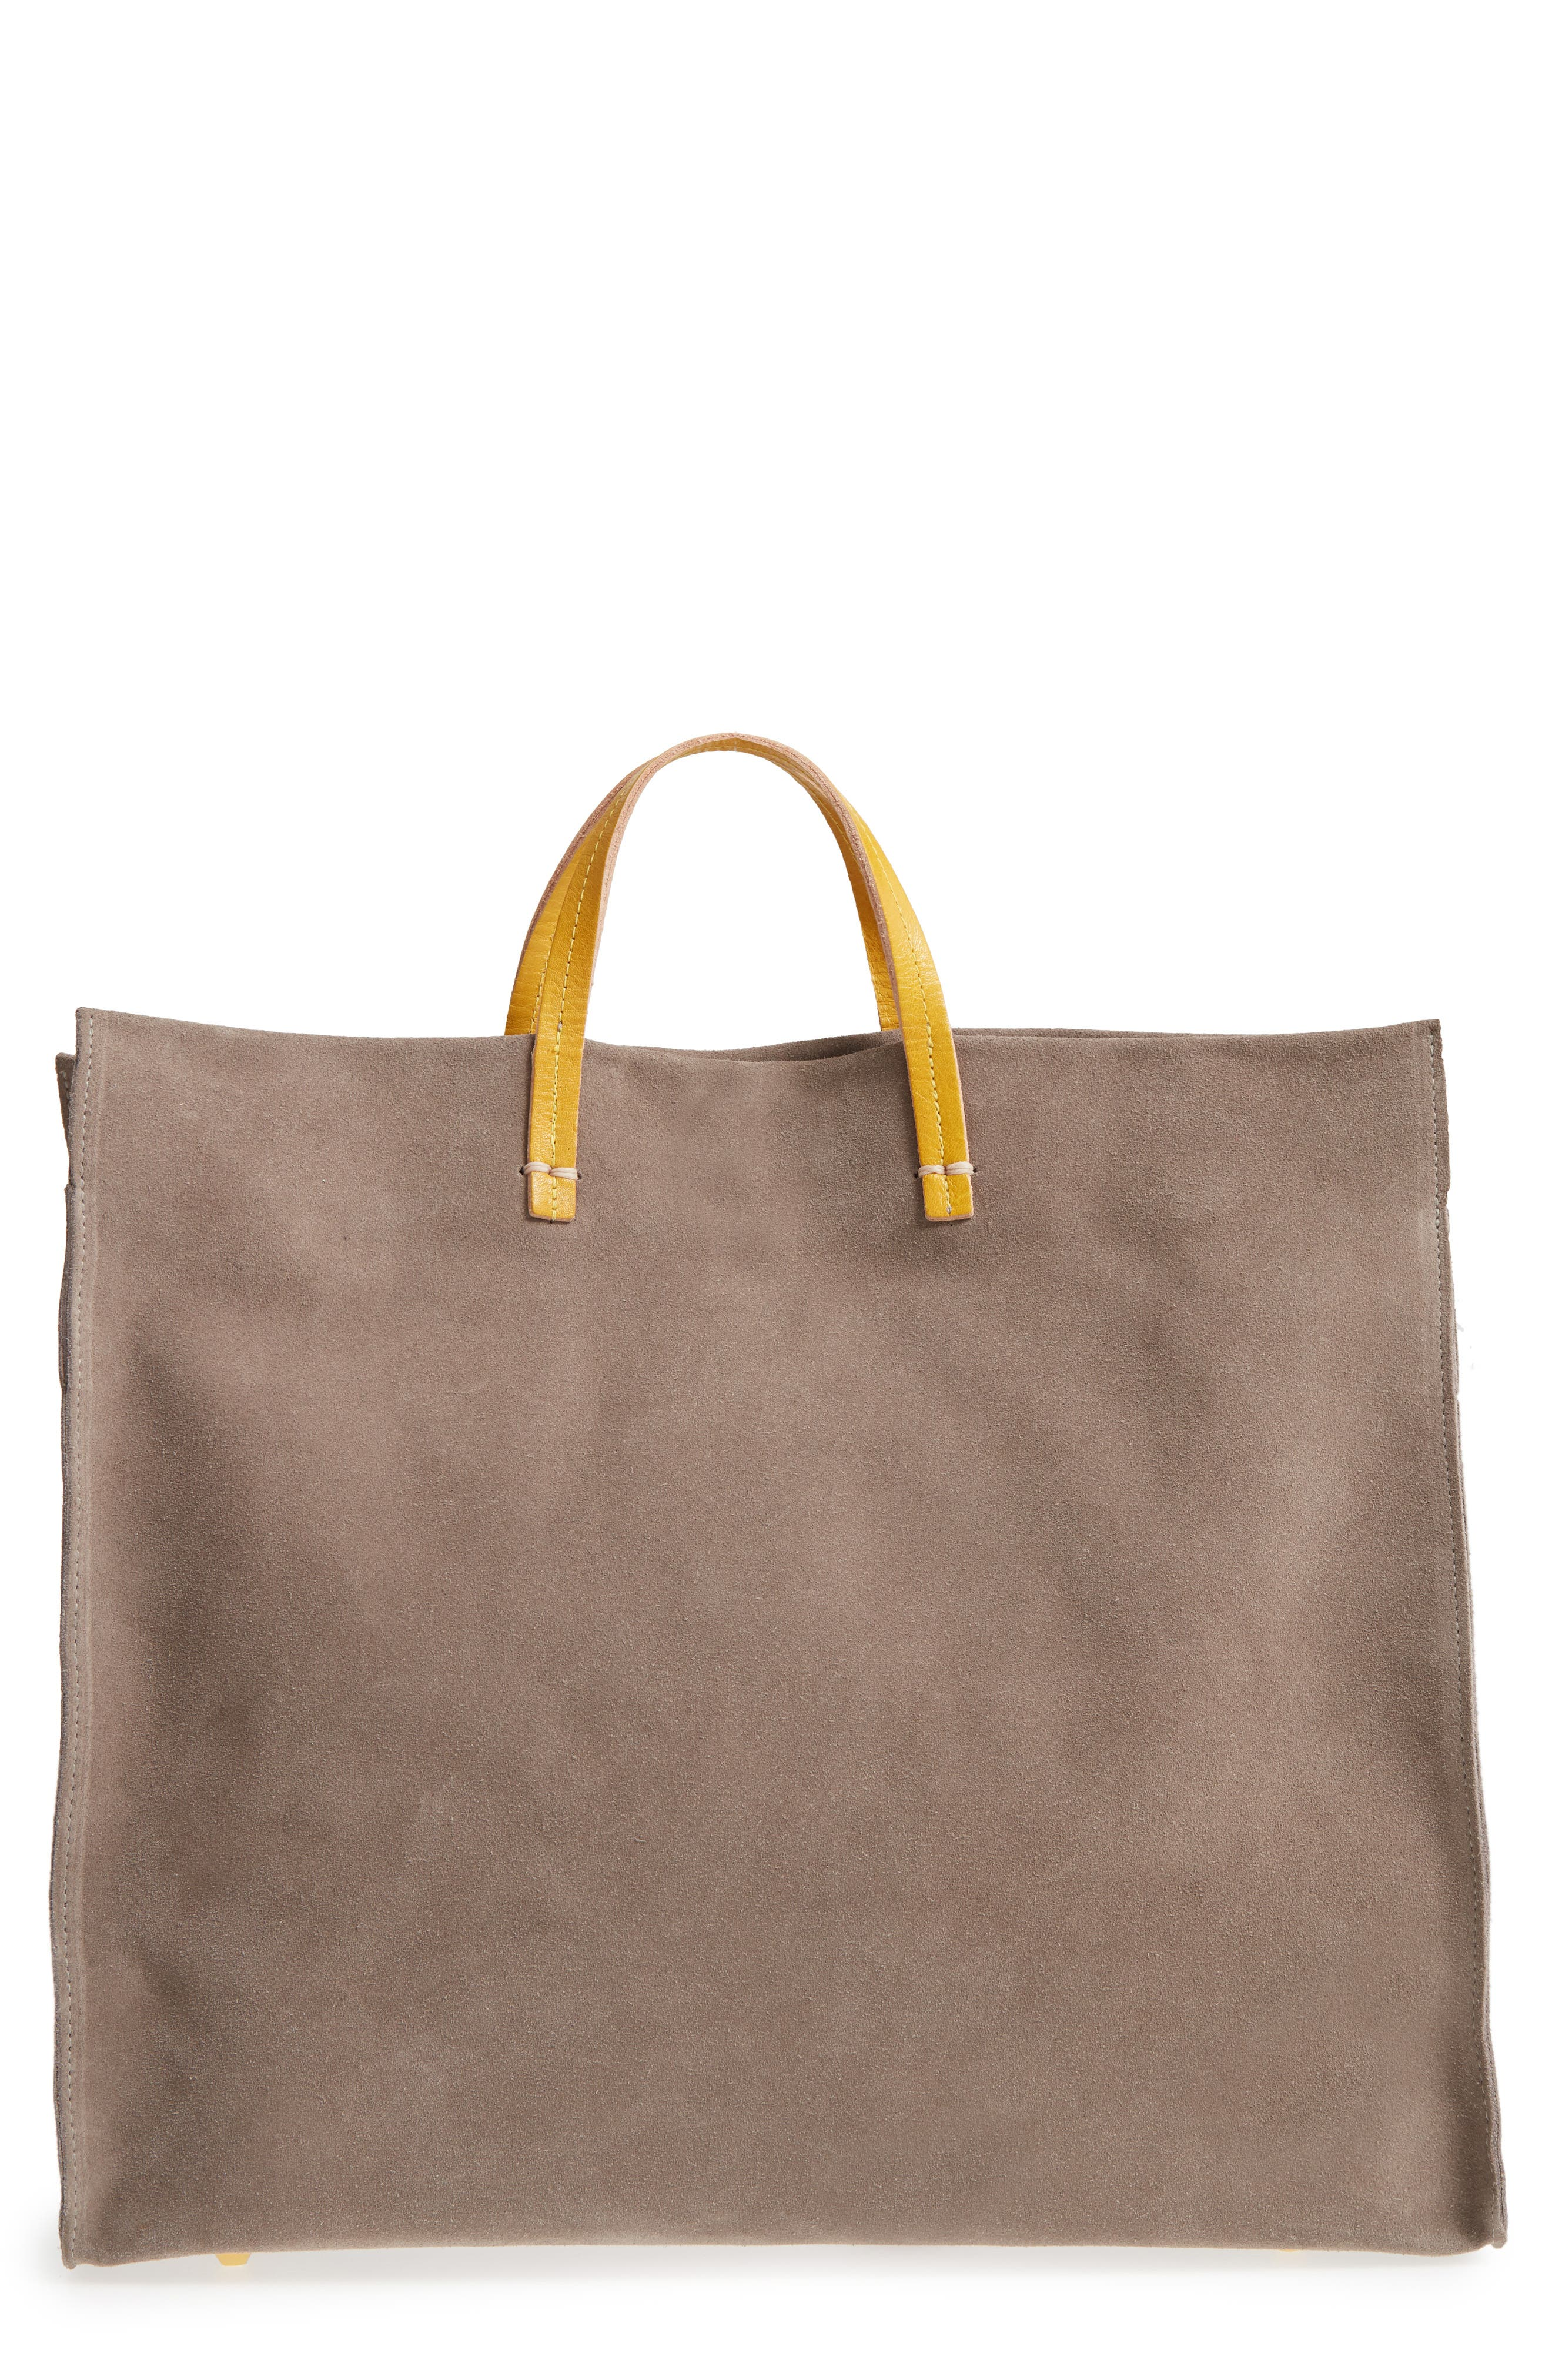 Simple Suede Tote,                         Main,                         color, TAUPE/ YELLOW RUSTIC